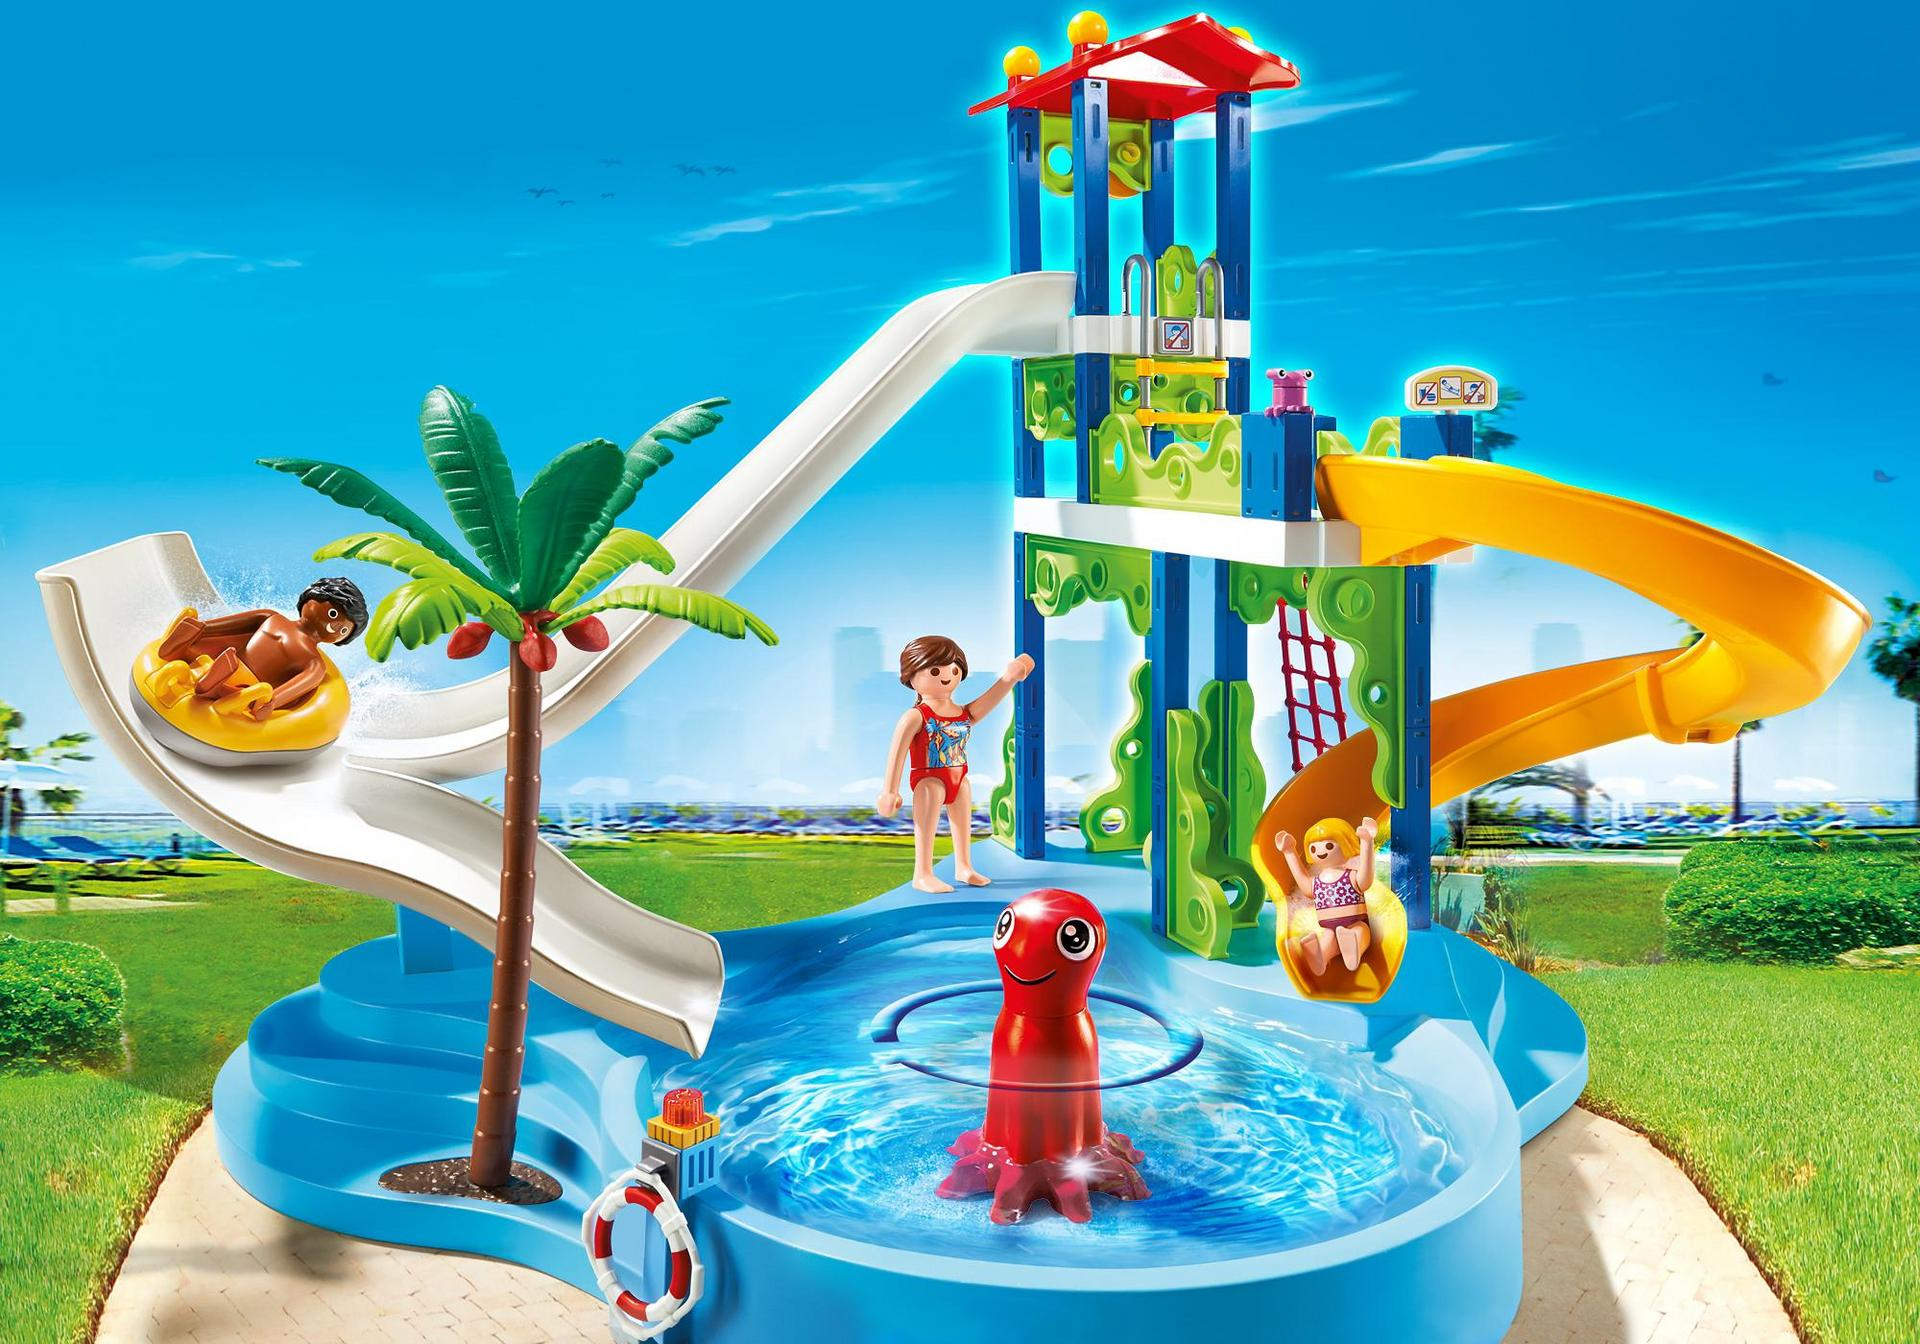 //media.playmobil.com/i/playmobil/6669_product_detail?locale=en-US,en,*&$pdp_product_zoom_xl$